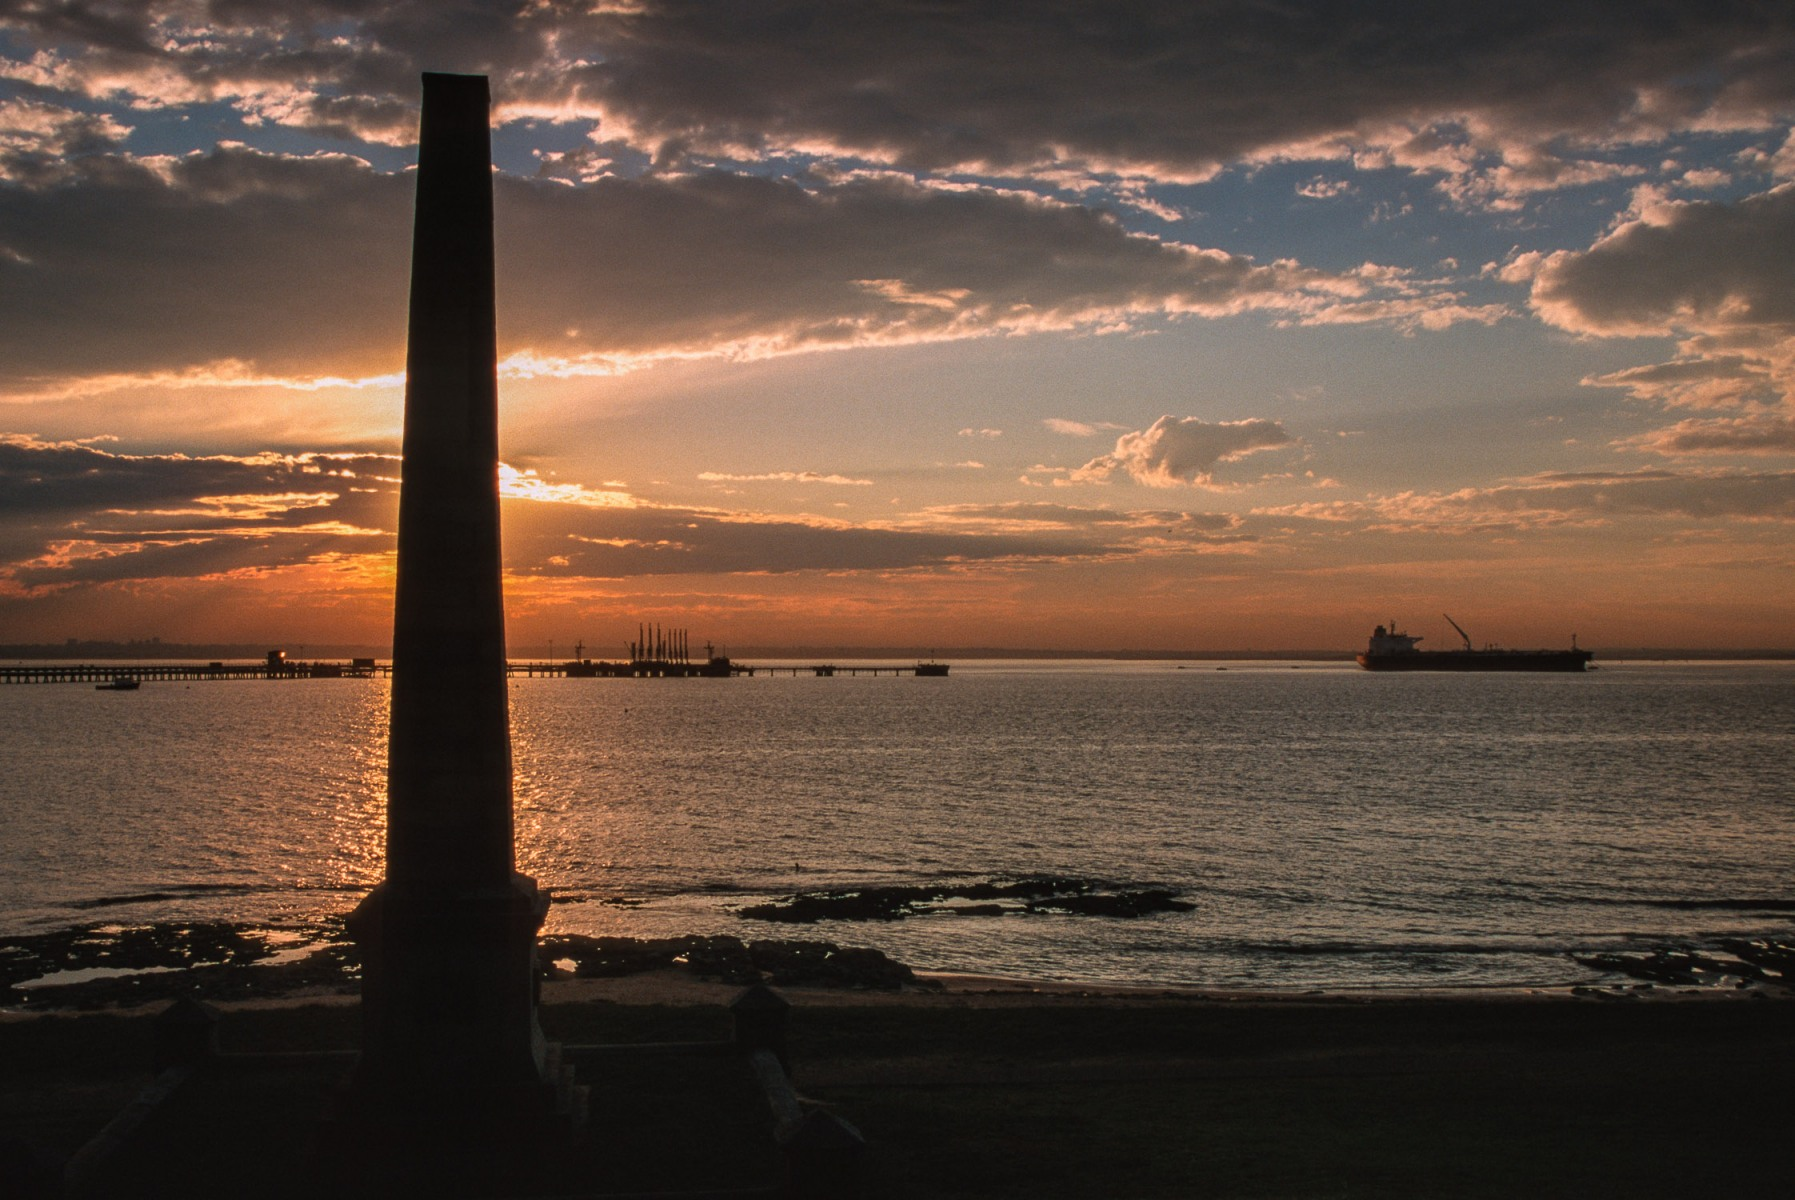 Sunset over the Cook Memorial and Botany Bay, Sydney